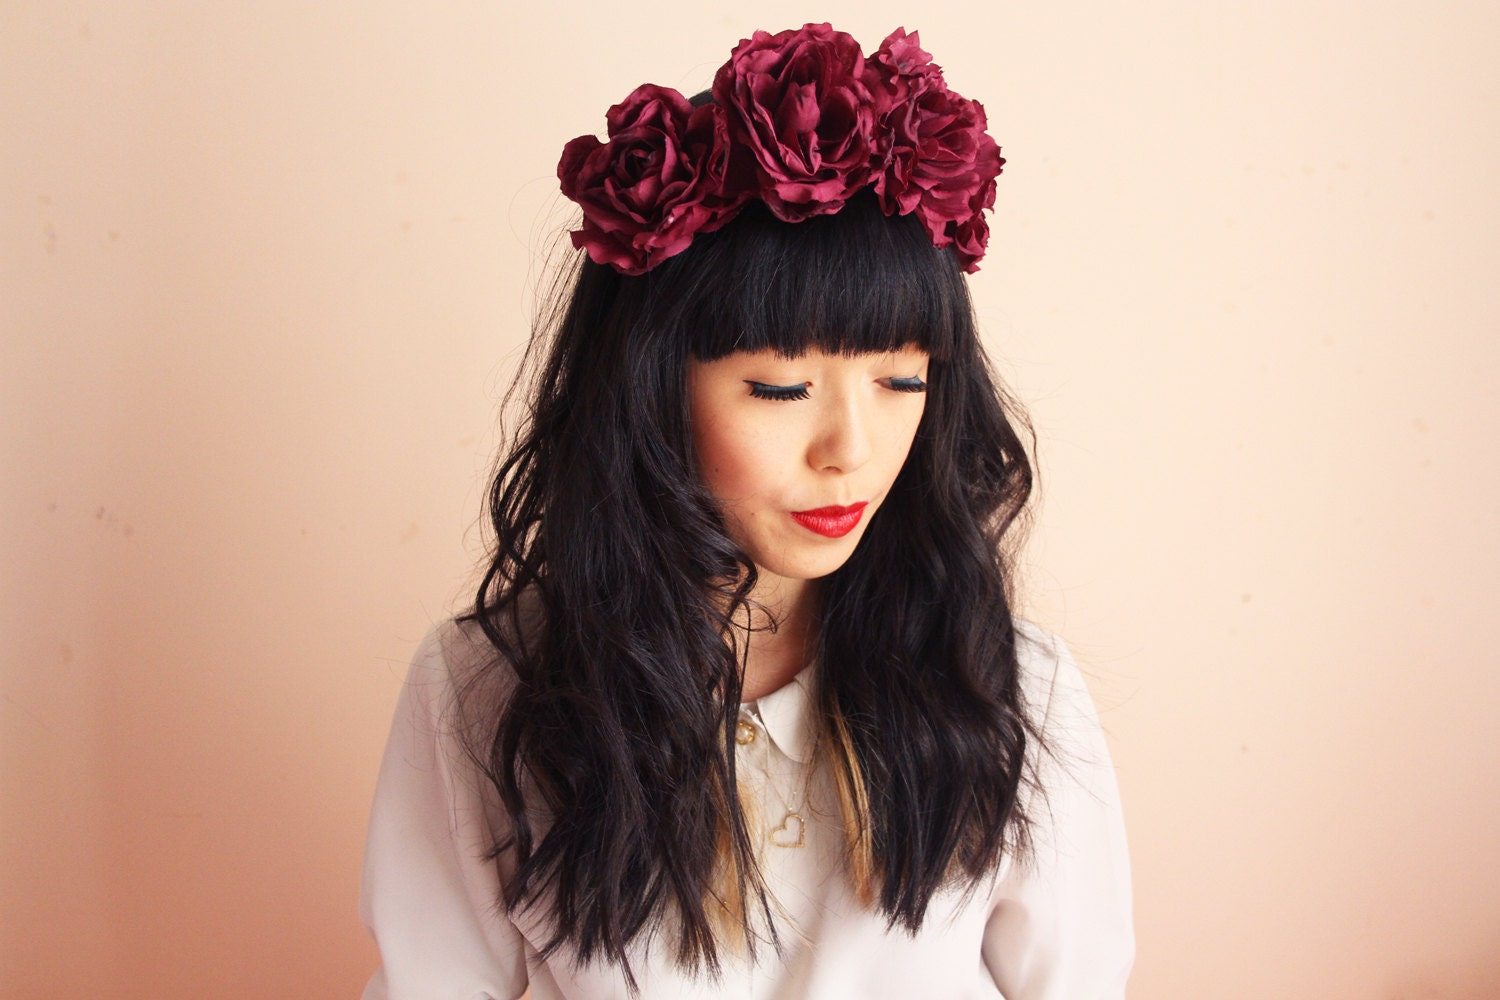 burgundy wine flower crown large oversize rose headband